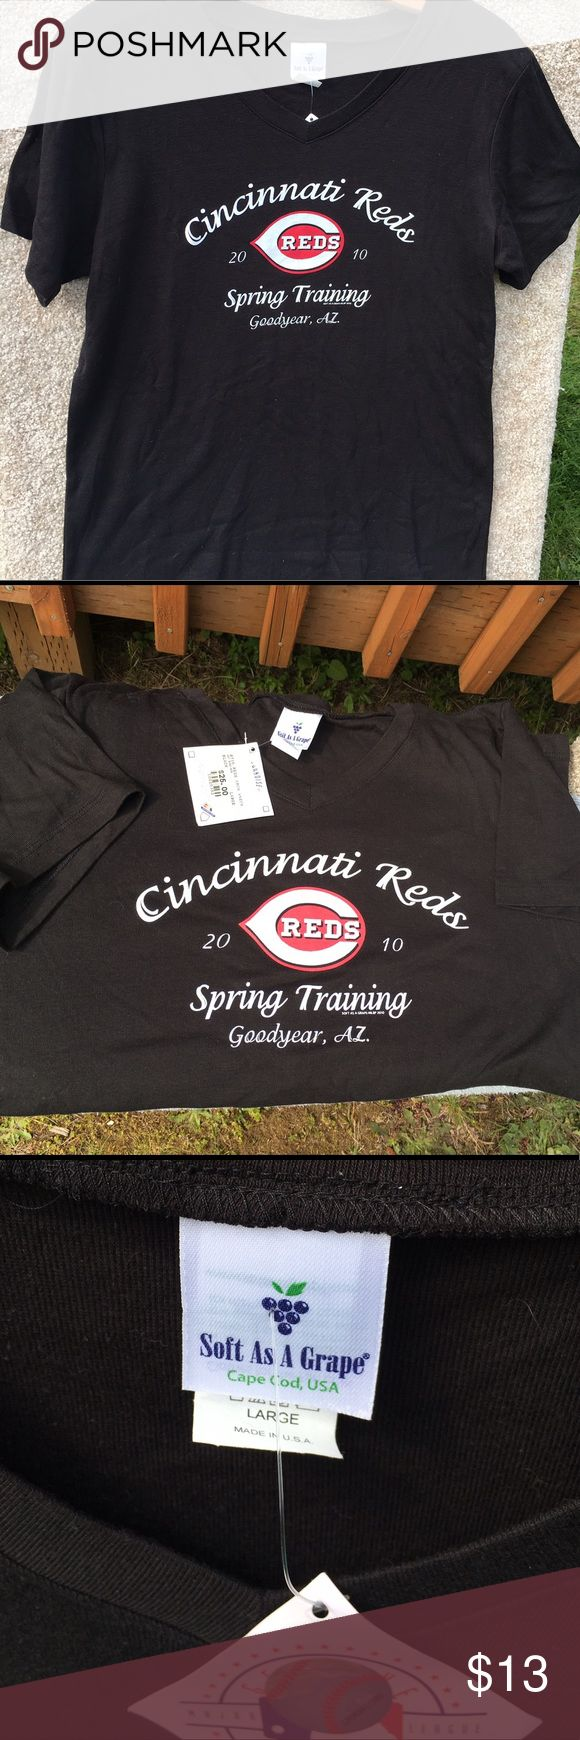 ⚾️️MLB Cincinnati Reds T Black Soft as Grape Womens T size Large. Reds spring training T  💯 Authentic 🚫NO trades  👉🏽NO longer taking offers on this item since it is priced as low as i can go. Postmark takes 20% of sales plz keep that in mind ❣️Please be kind as that's what you'll get in return ☮️Thanks for the opportunity to share my goods w/ u ✌🏽️💝😁 <- My Motto Peace, Love & Happiness Always! Soft As Grape Tops Tees - Short Sleeve